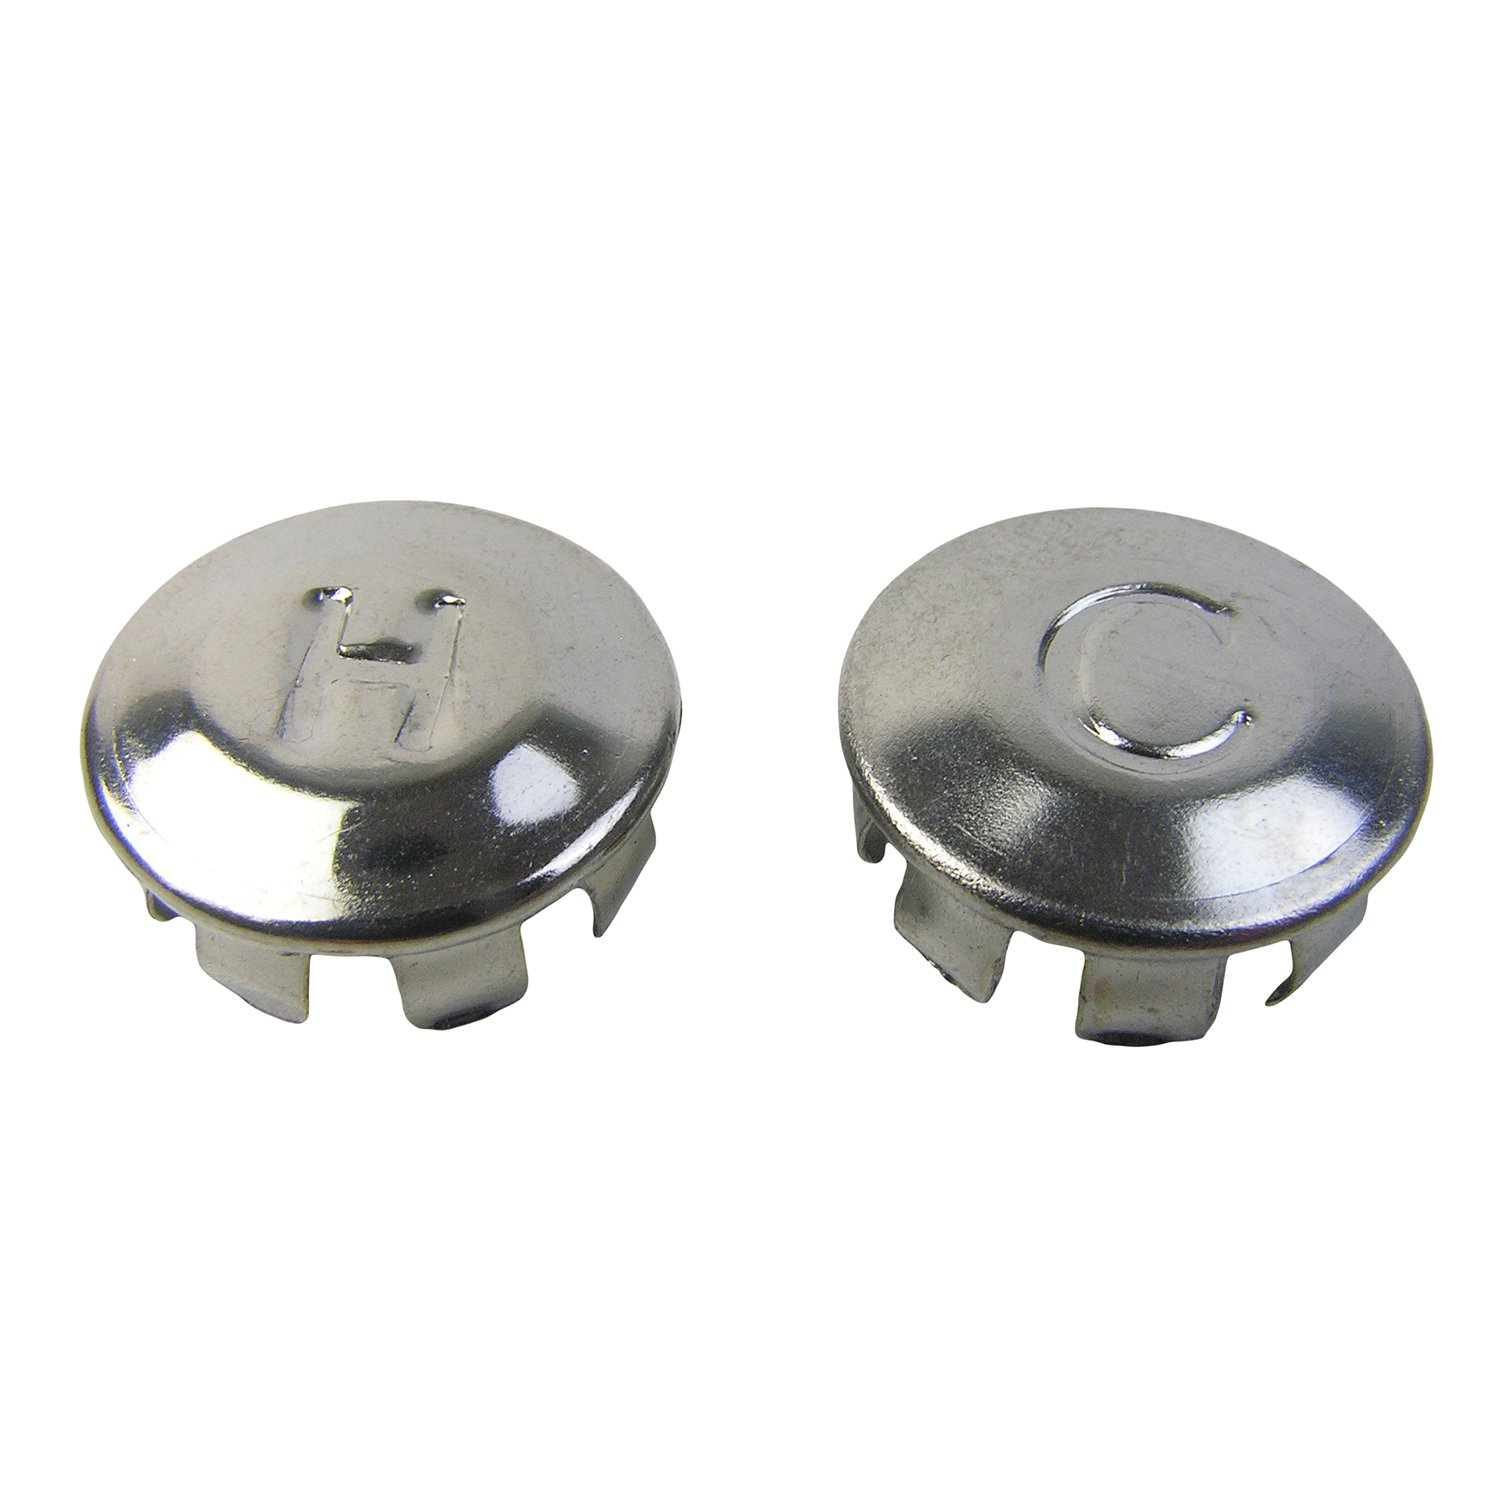 LASCO 0-6009 Hot/Cold Faucet Handle Index Buttons for Price ...